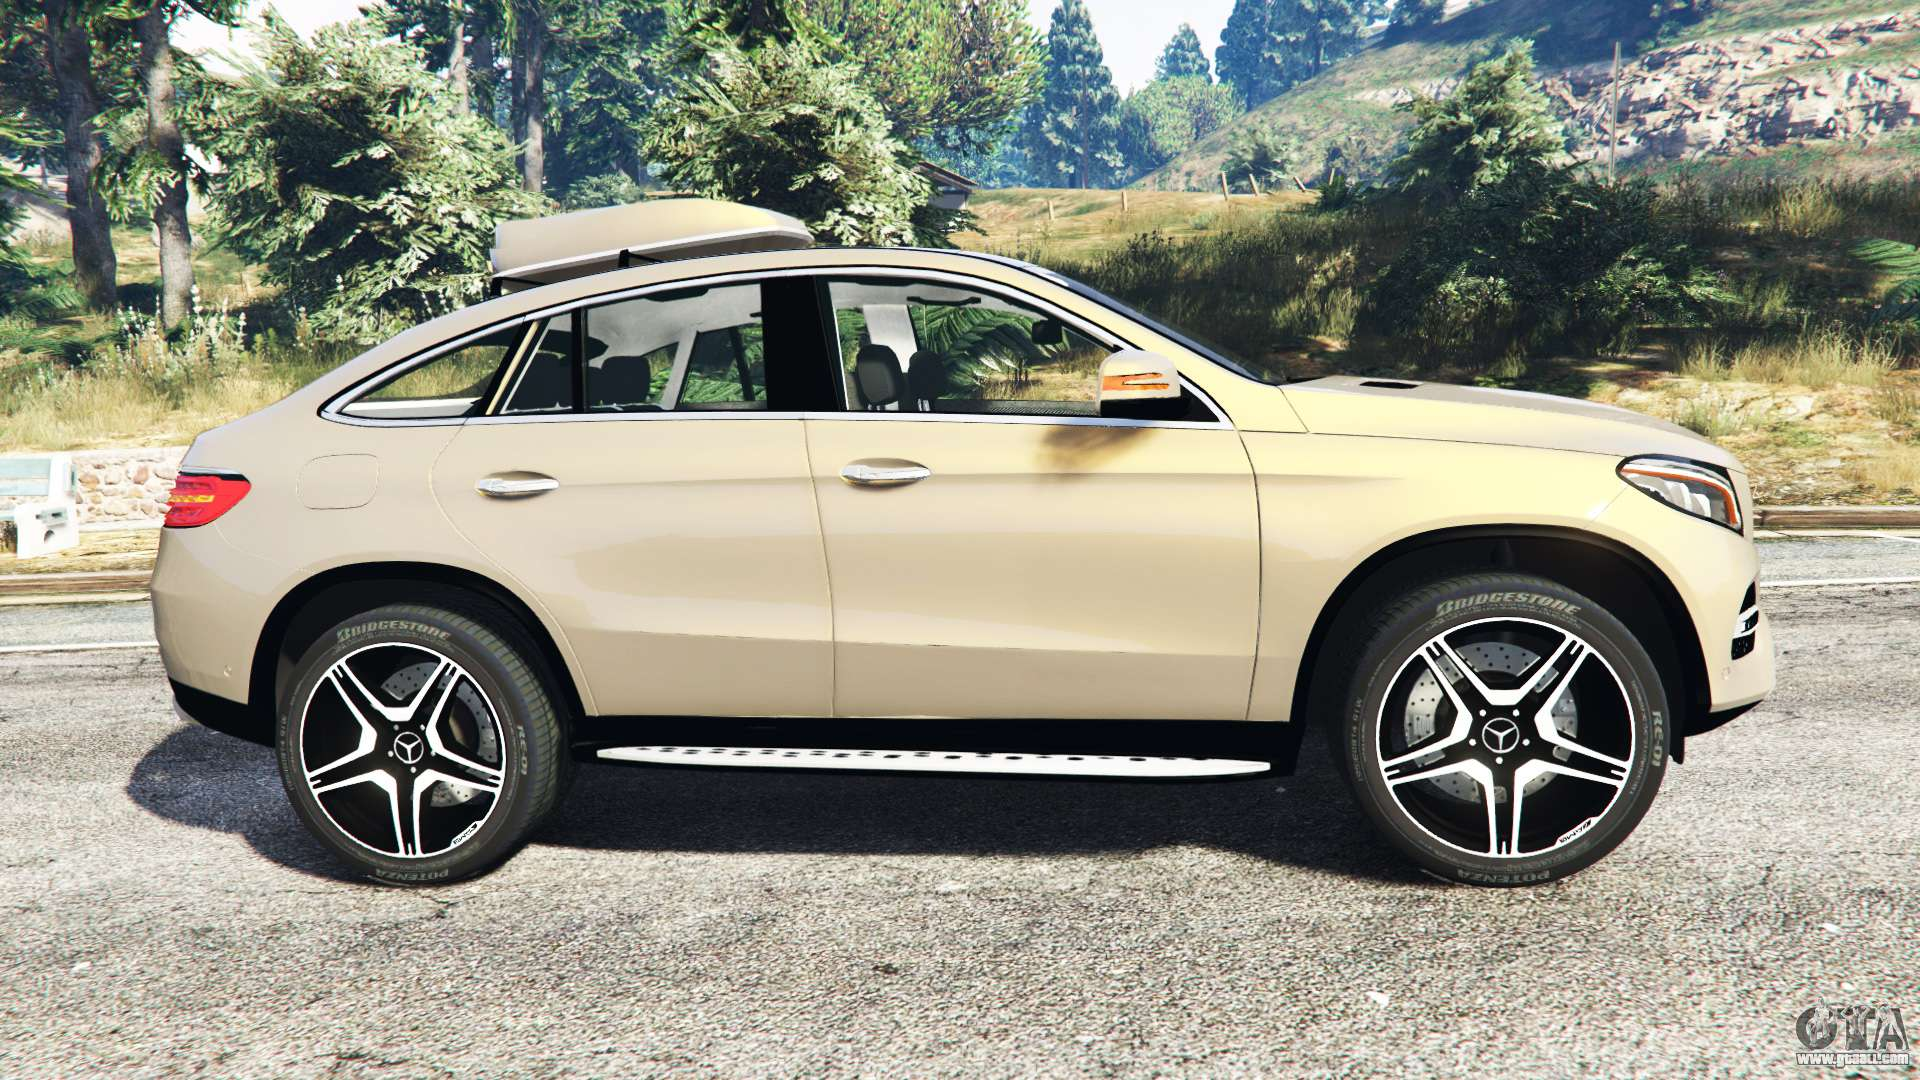 Mercedes benz gle 450 amg 4matic c292 add on for gta 5 for Mercedes benz gle 450 4matic